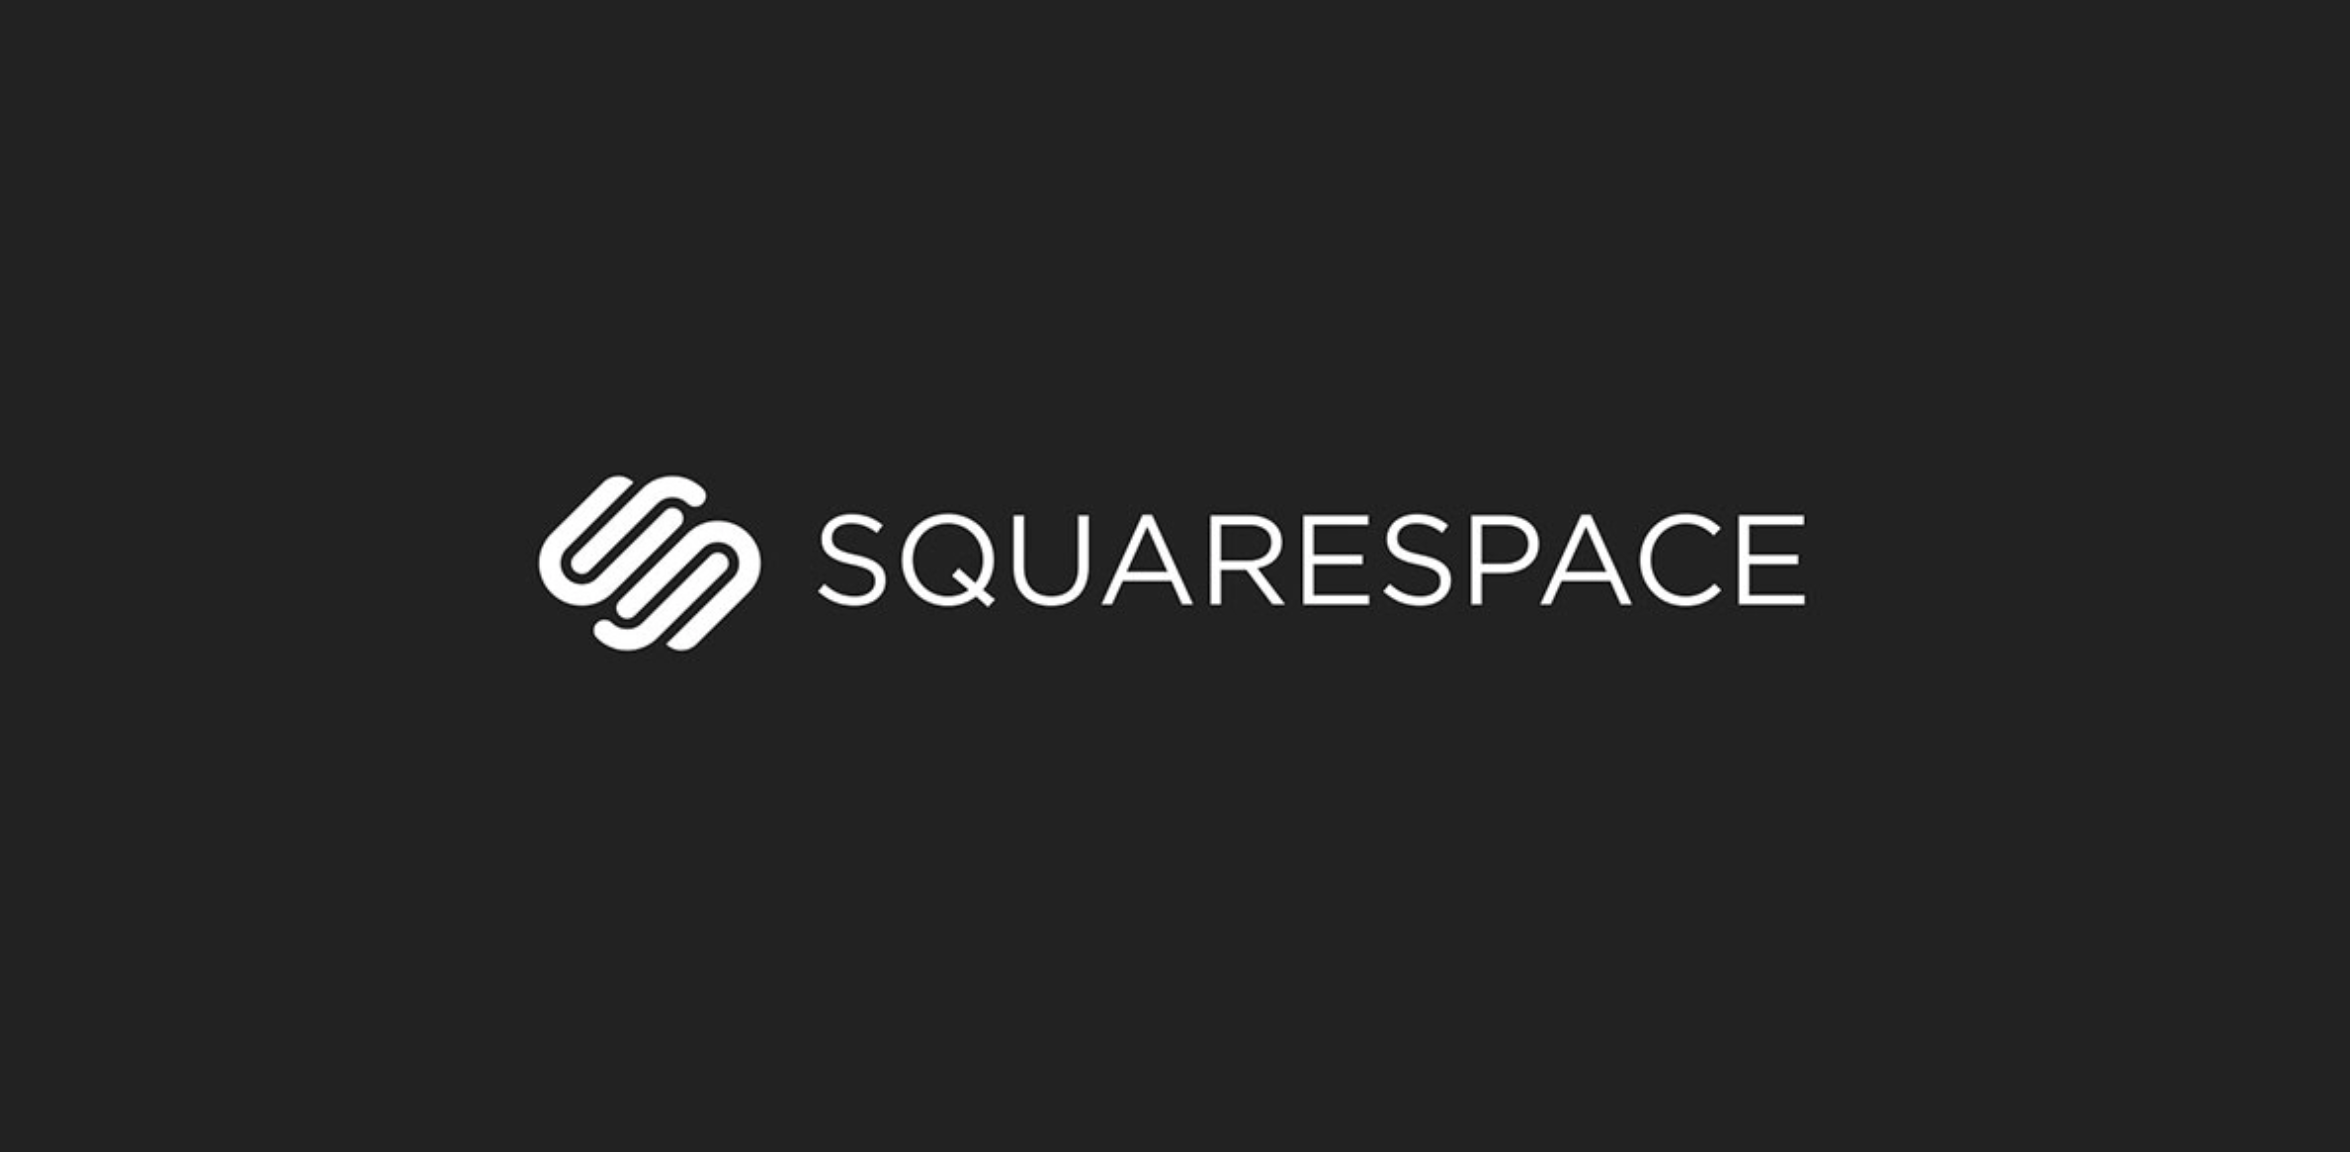 Squarespace Supported